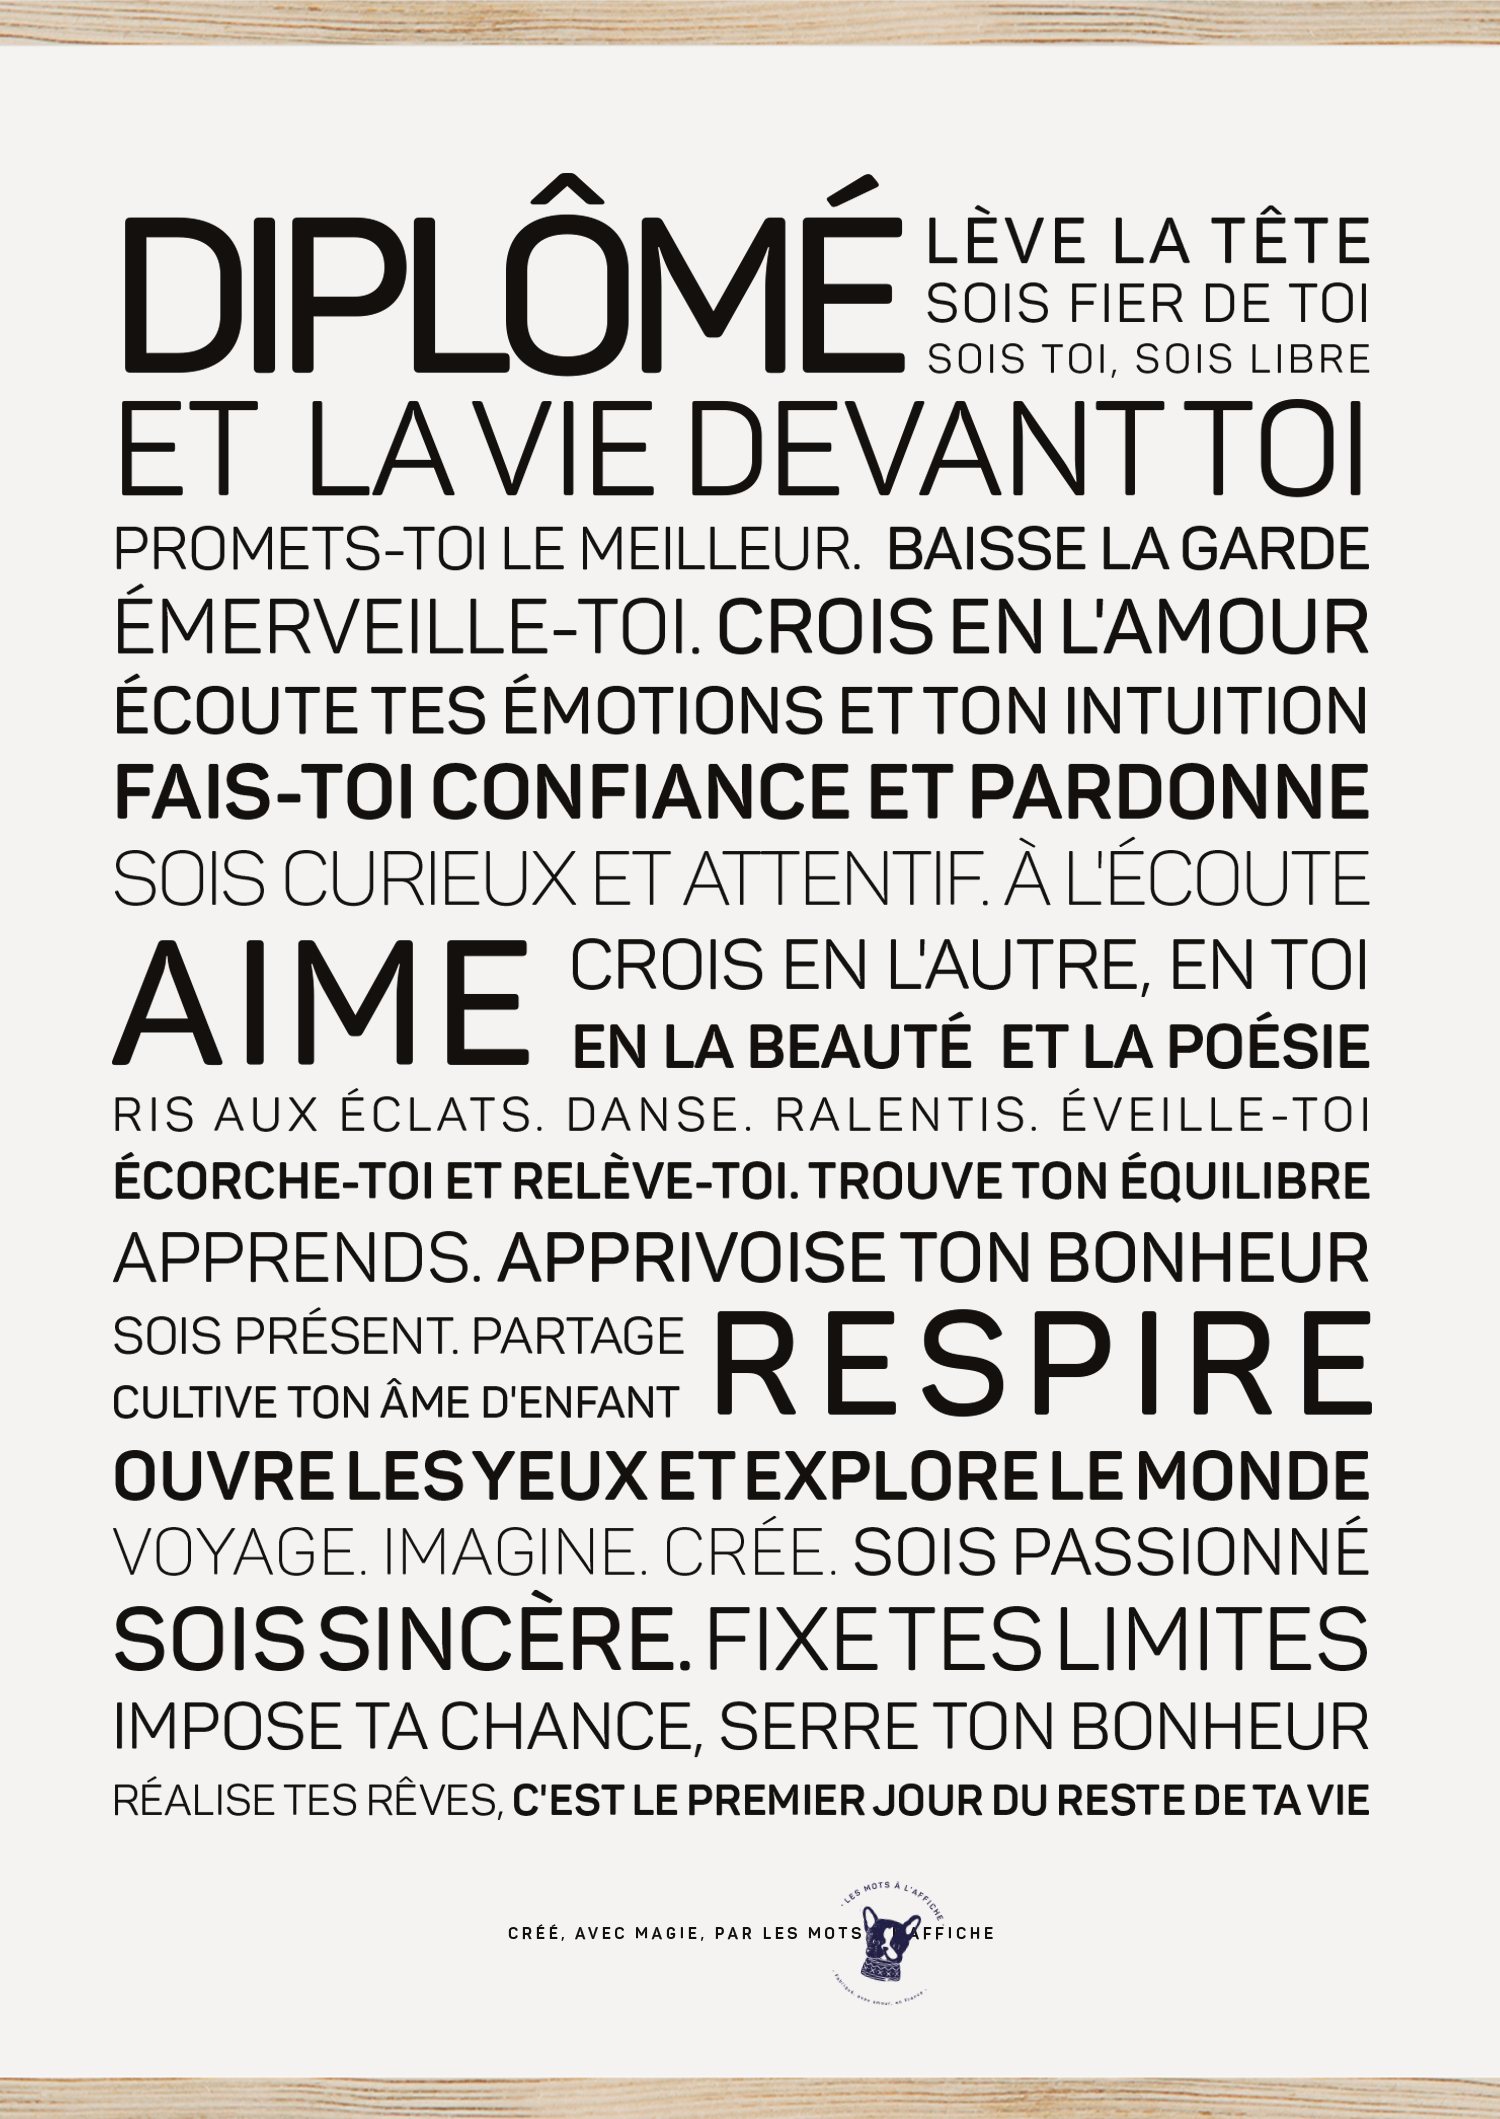 Affiche Diplome